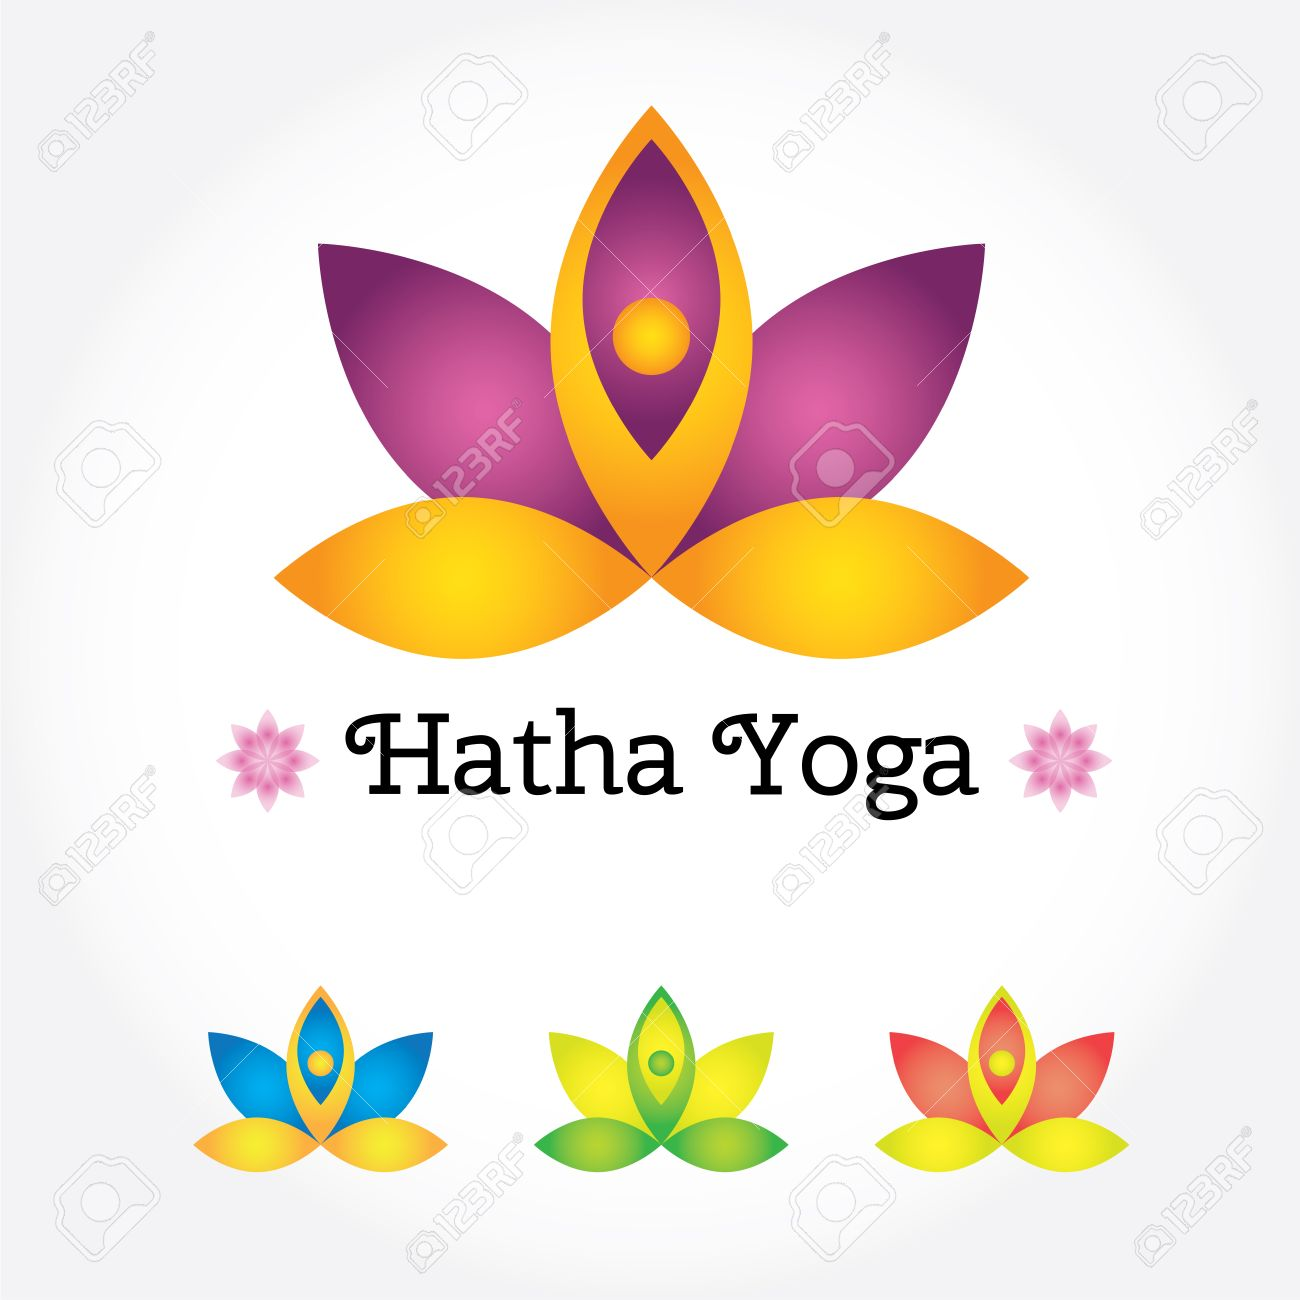 Hatha Yoga Sign, Lotus Flower In Different Colors With Human ...